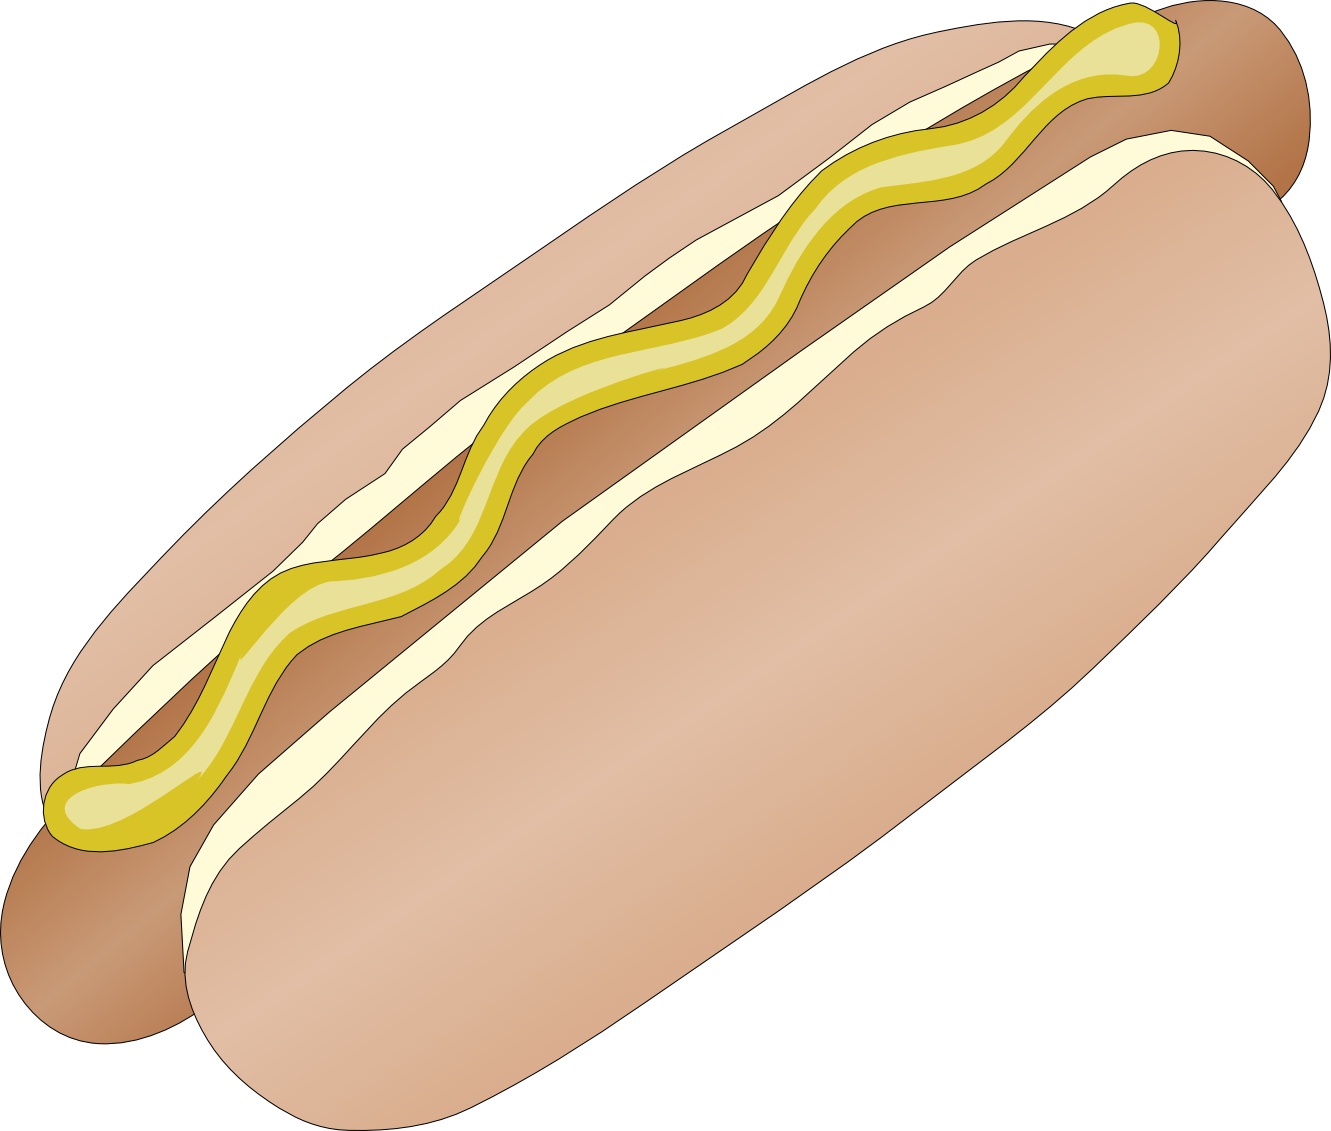 1331x1131 Hot Dog Clip Art Amp Images Free For Commercial Use